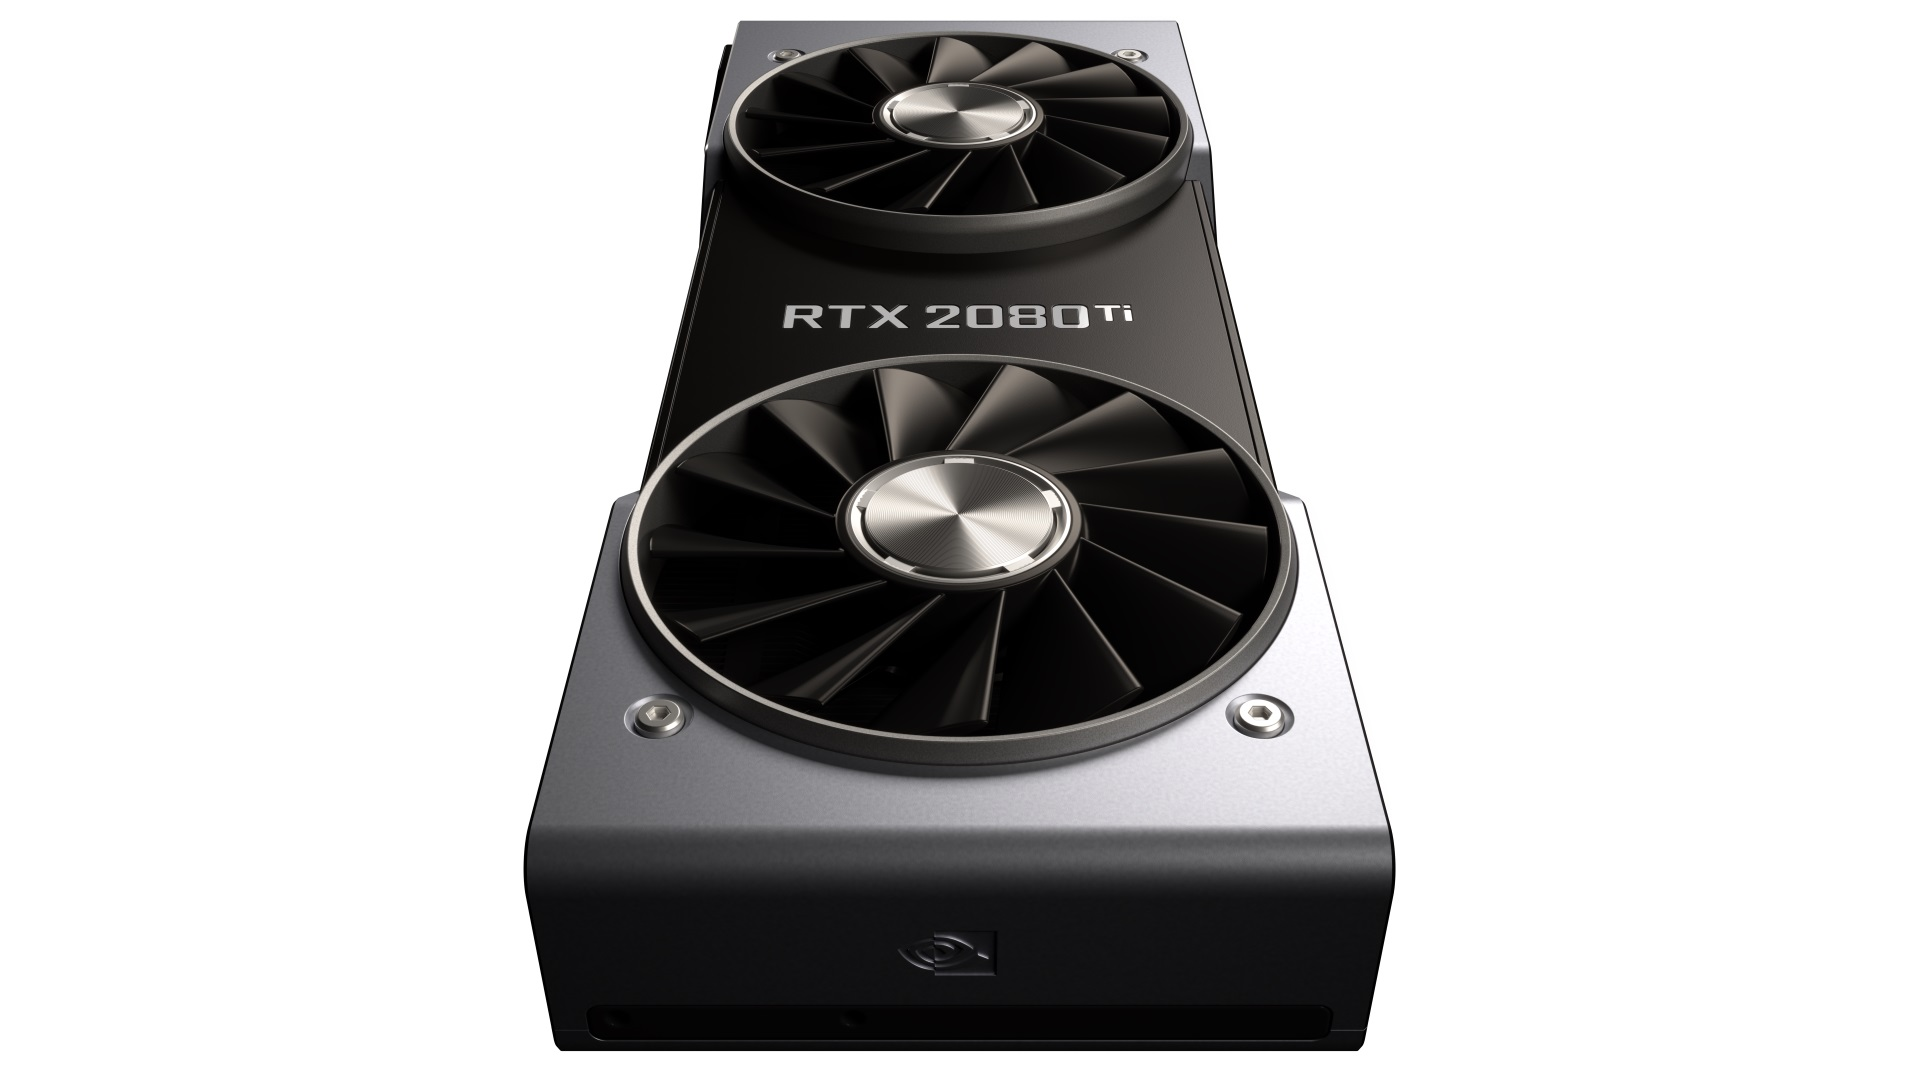 Hands-on with the Nvidia RTX 2080 Ti and real-time ray traced gaming